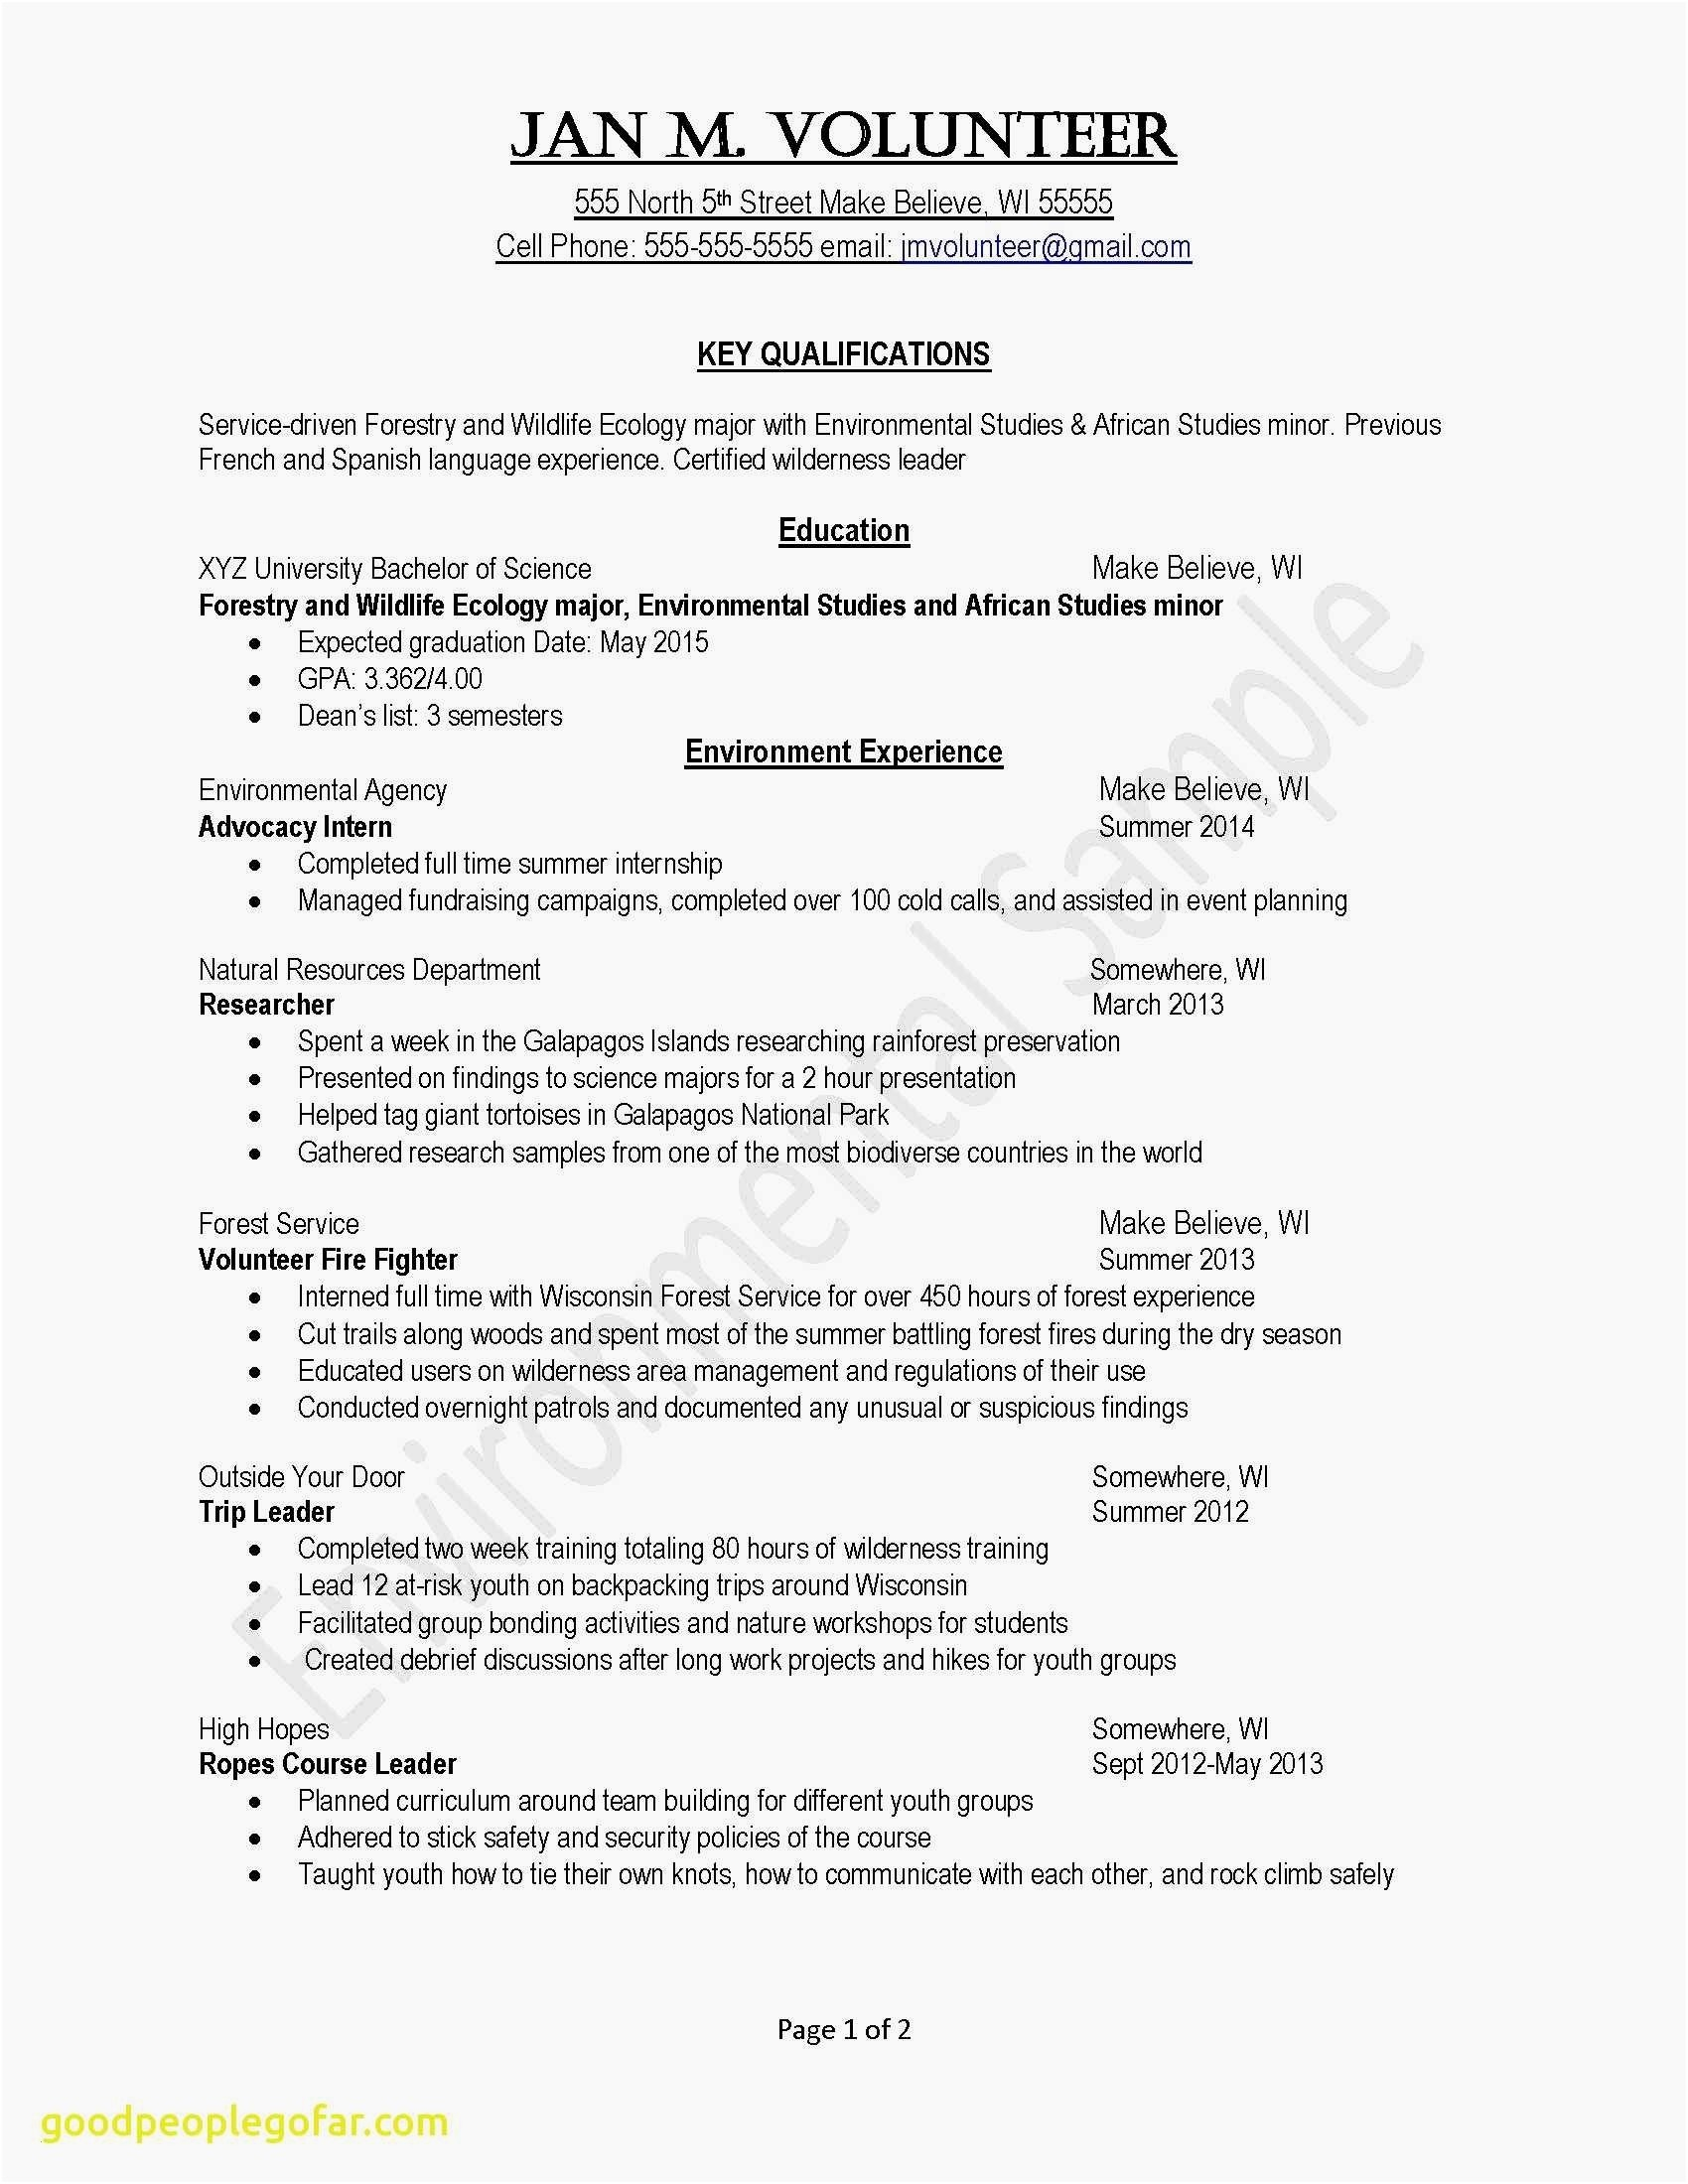 Janitor Resume Template - Teacher Resume Template Download Paragraphrewriter